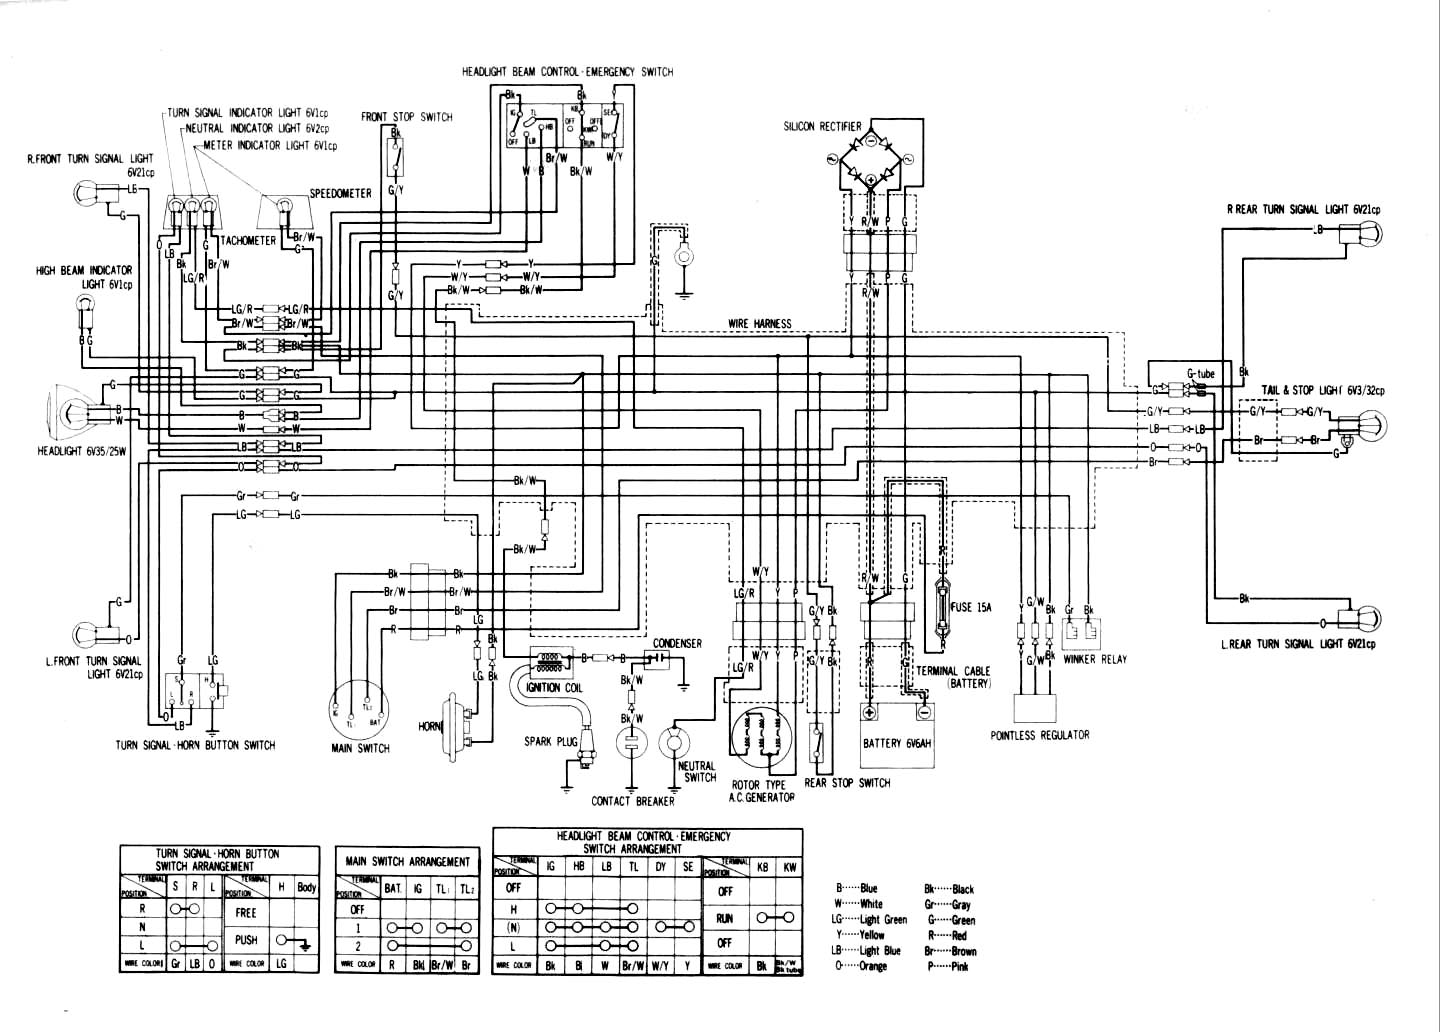 xl175 honda xl 125 wiring diagram 1981 honda xl 125 wiring diagram 1974 honda cb360 wiring diagram at reclaimingppi.co